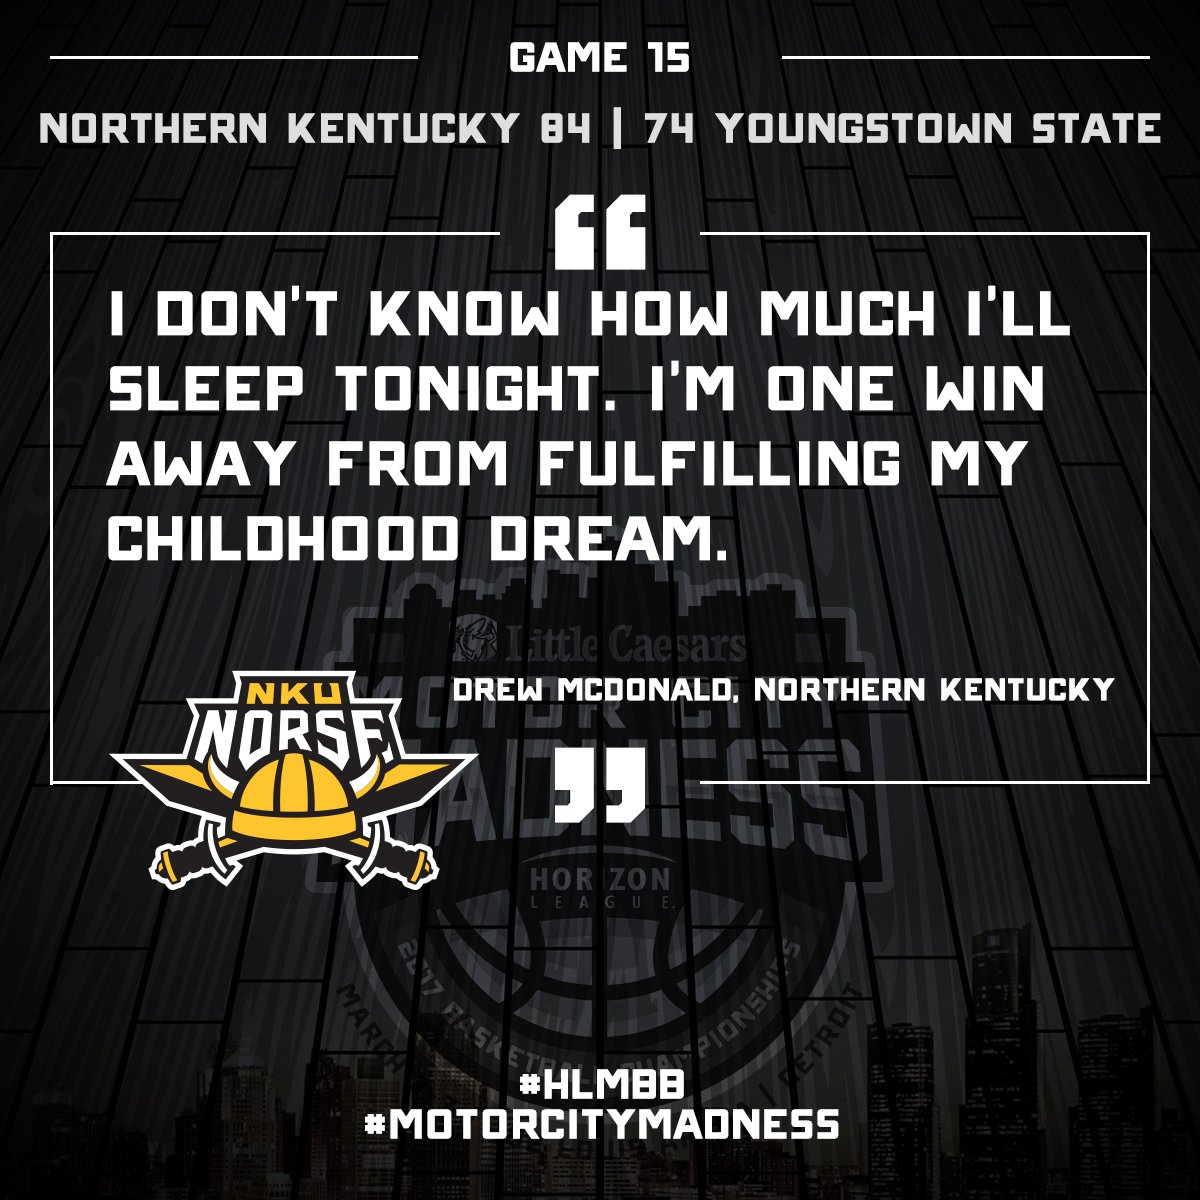 Into the #HLMBB #MotorCityMadness final goes @NKUNorseMBB https://t.co/mrrSF9jXIc